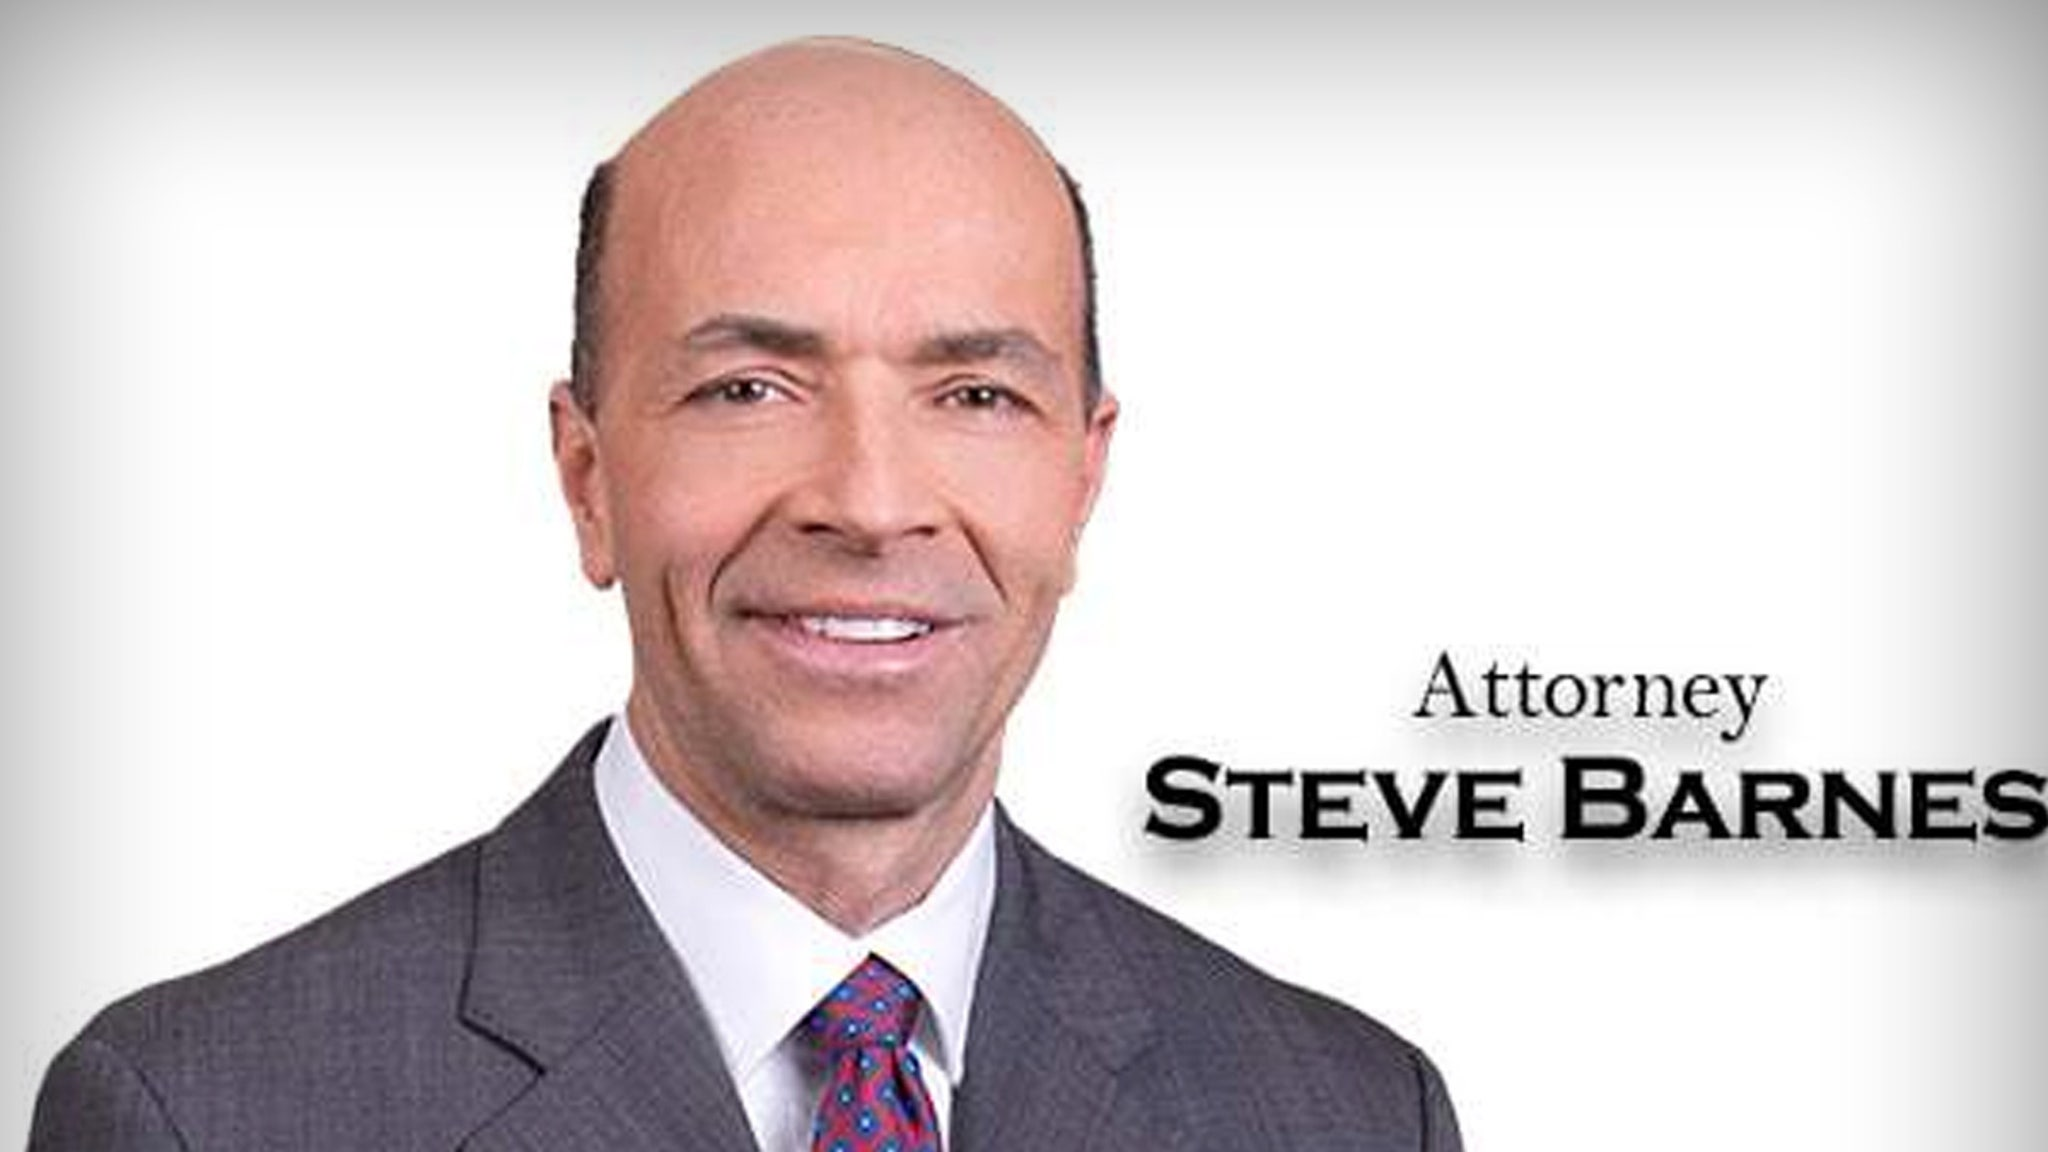 Steve Barnes of Cellino & Barnes Law Firm Reportedly ...